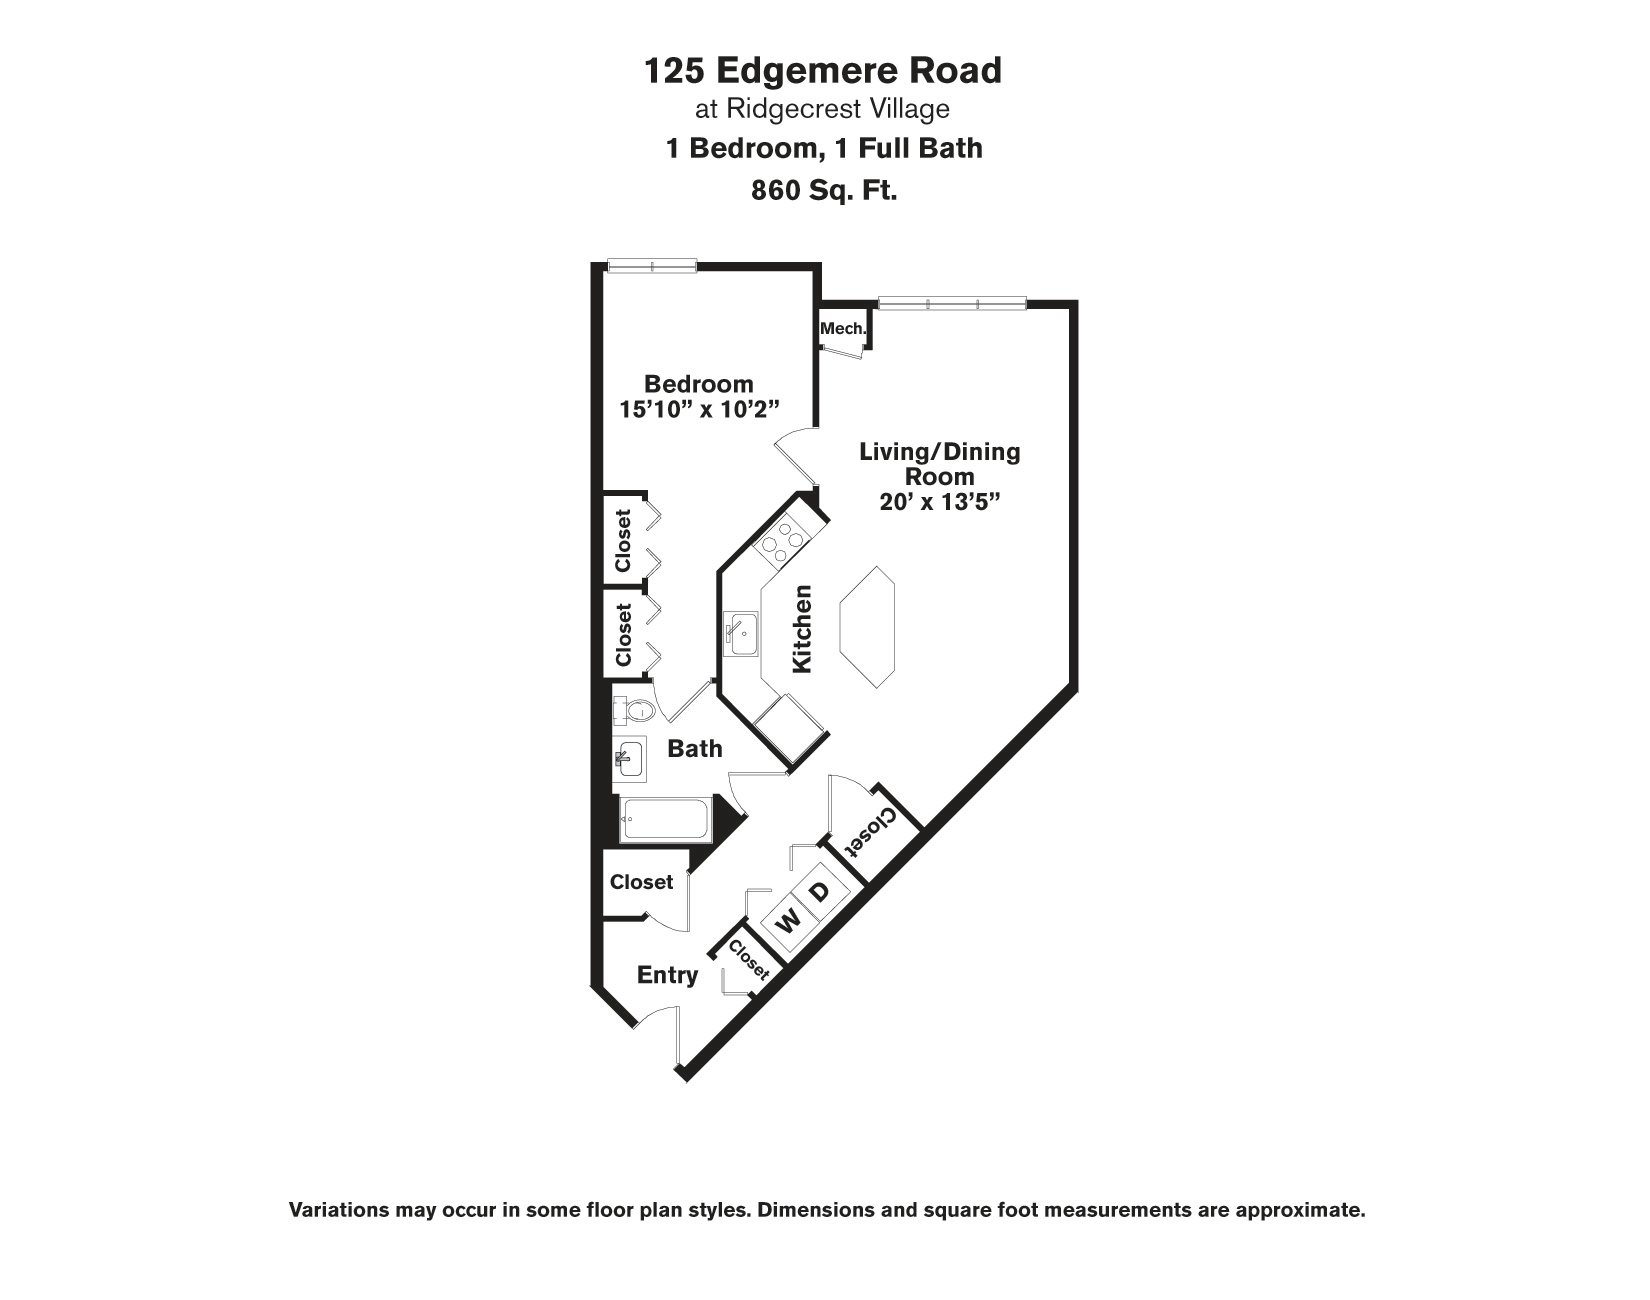 Click to view Floor plan 1 BR - Edgemere image 2